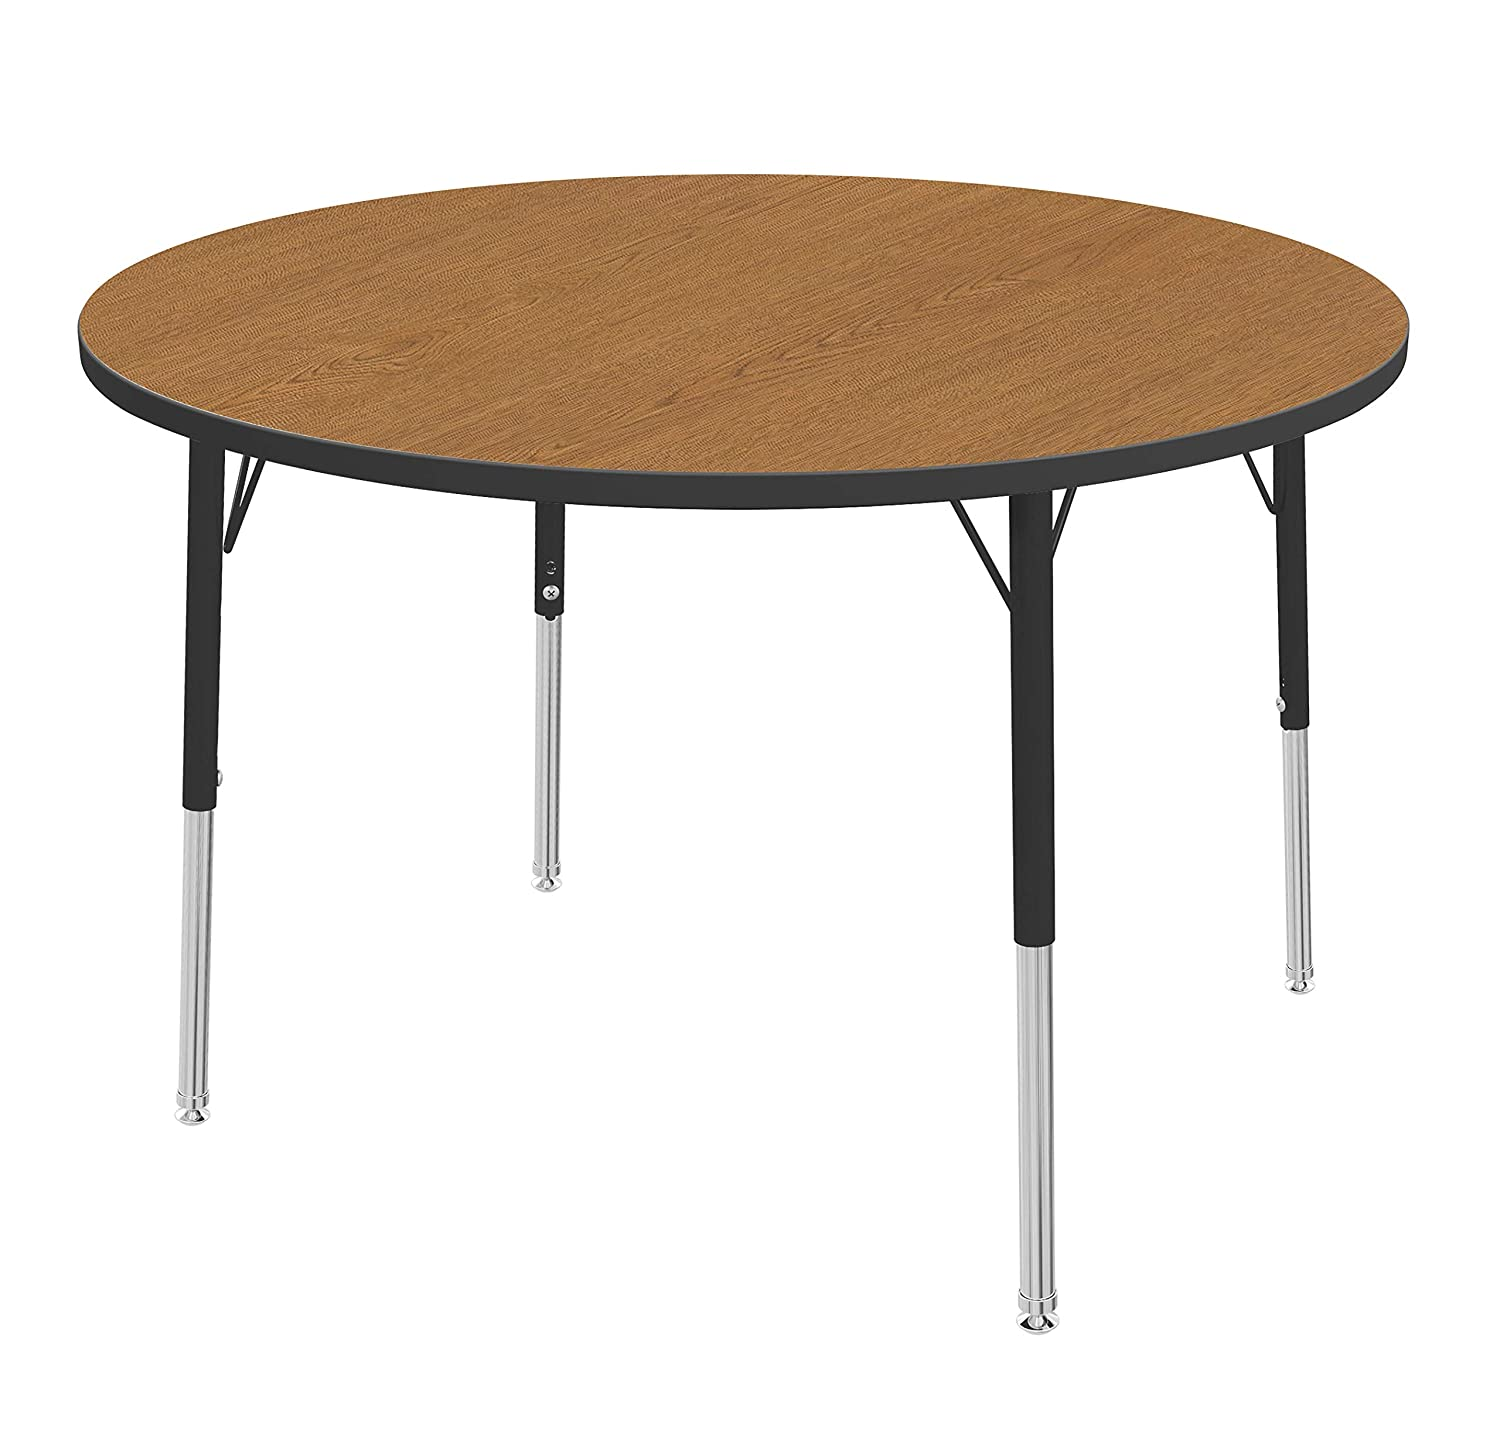 16-24 Fusion Maple -Top Marco Group MGA2245-50-ABLK 42 Round Shaped Adjustable Height Classroom Activity Table Toddler Size Black-Leg Black-Edge